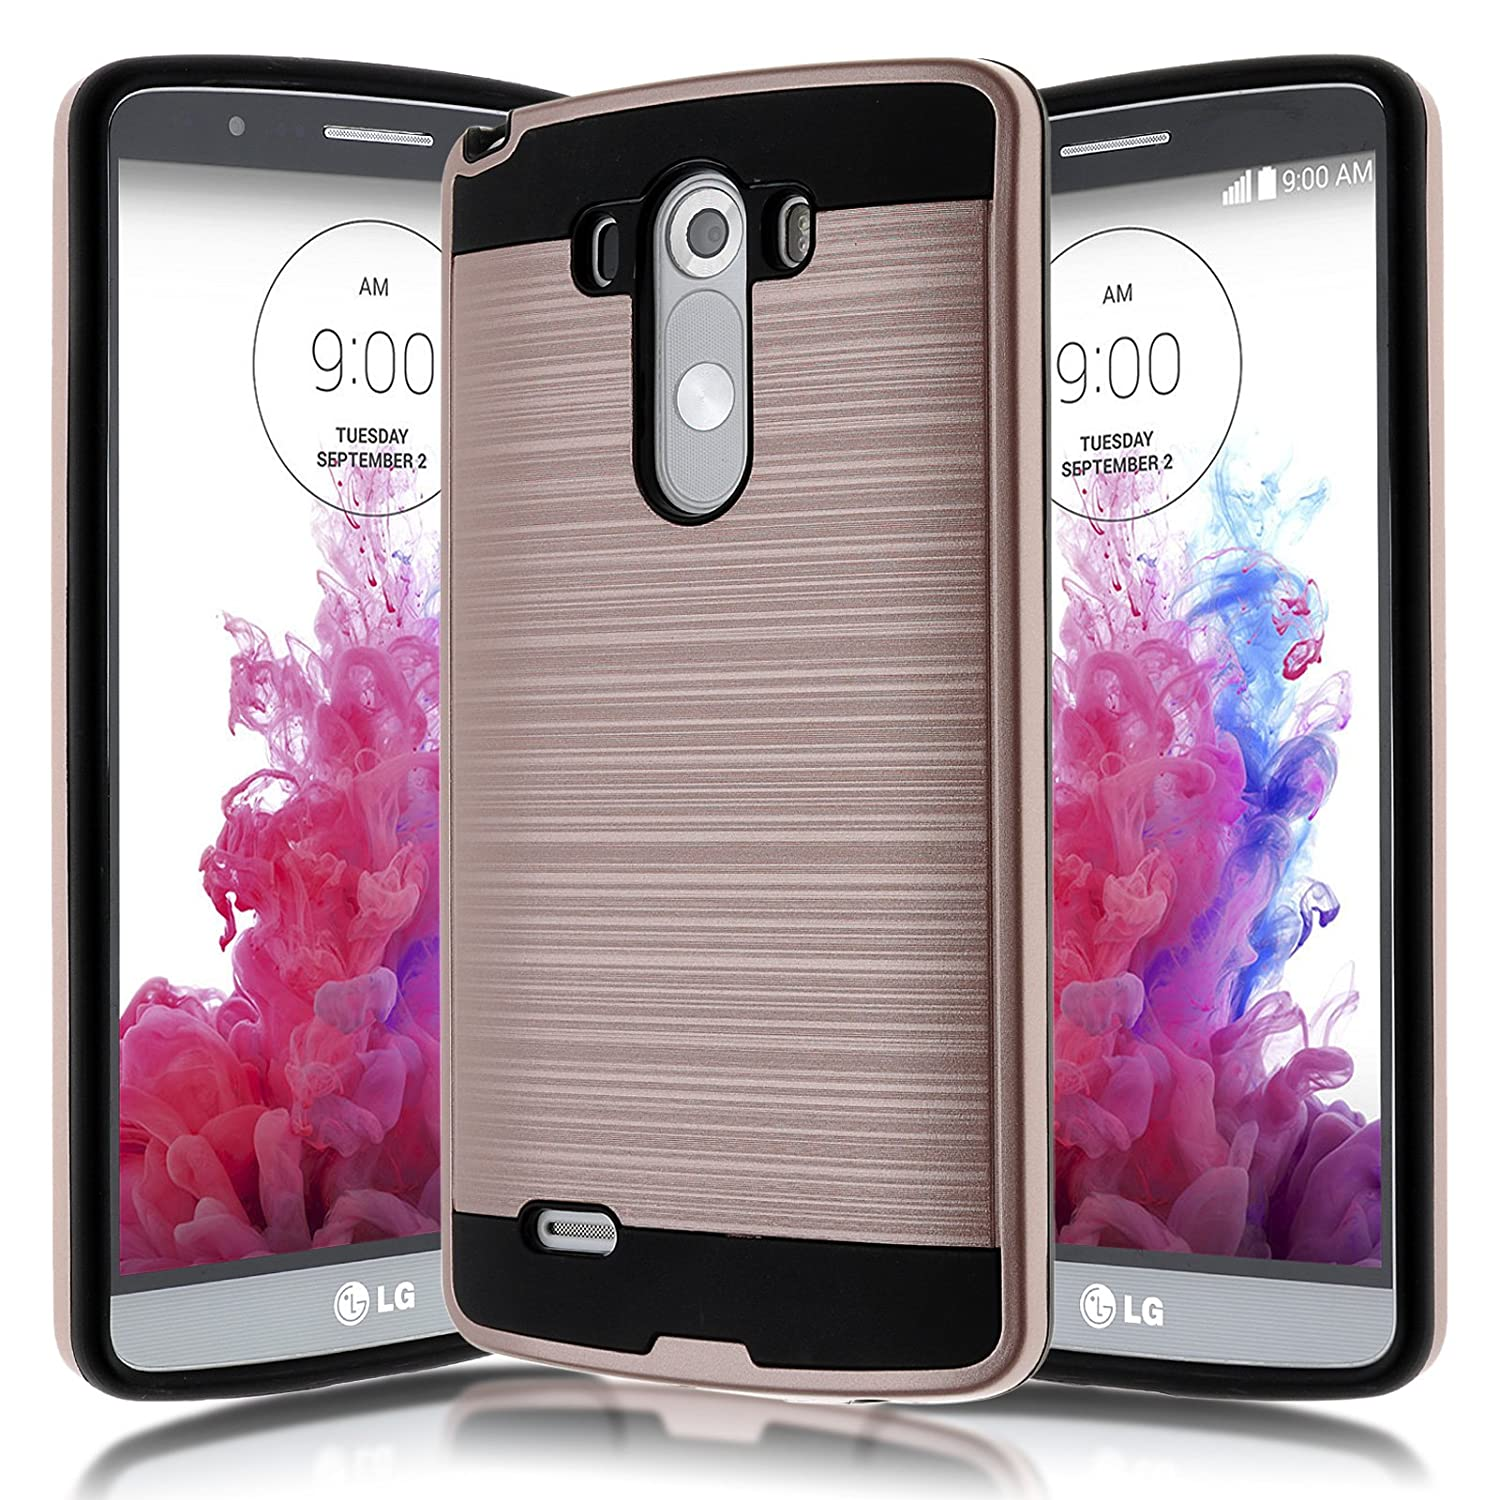 LG G3 D855 D851 Case,Kmall [Brushed Metal Texture] Heavy Duty Shockproof High Impact Resistant Durable Full Body [Maximum Drop Protection][Slim Fit] Hybrid Case Skin Cover Shell for LG G3[Rose Gold]